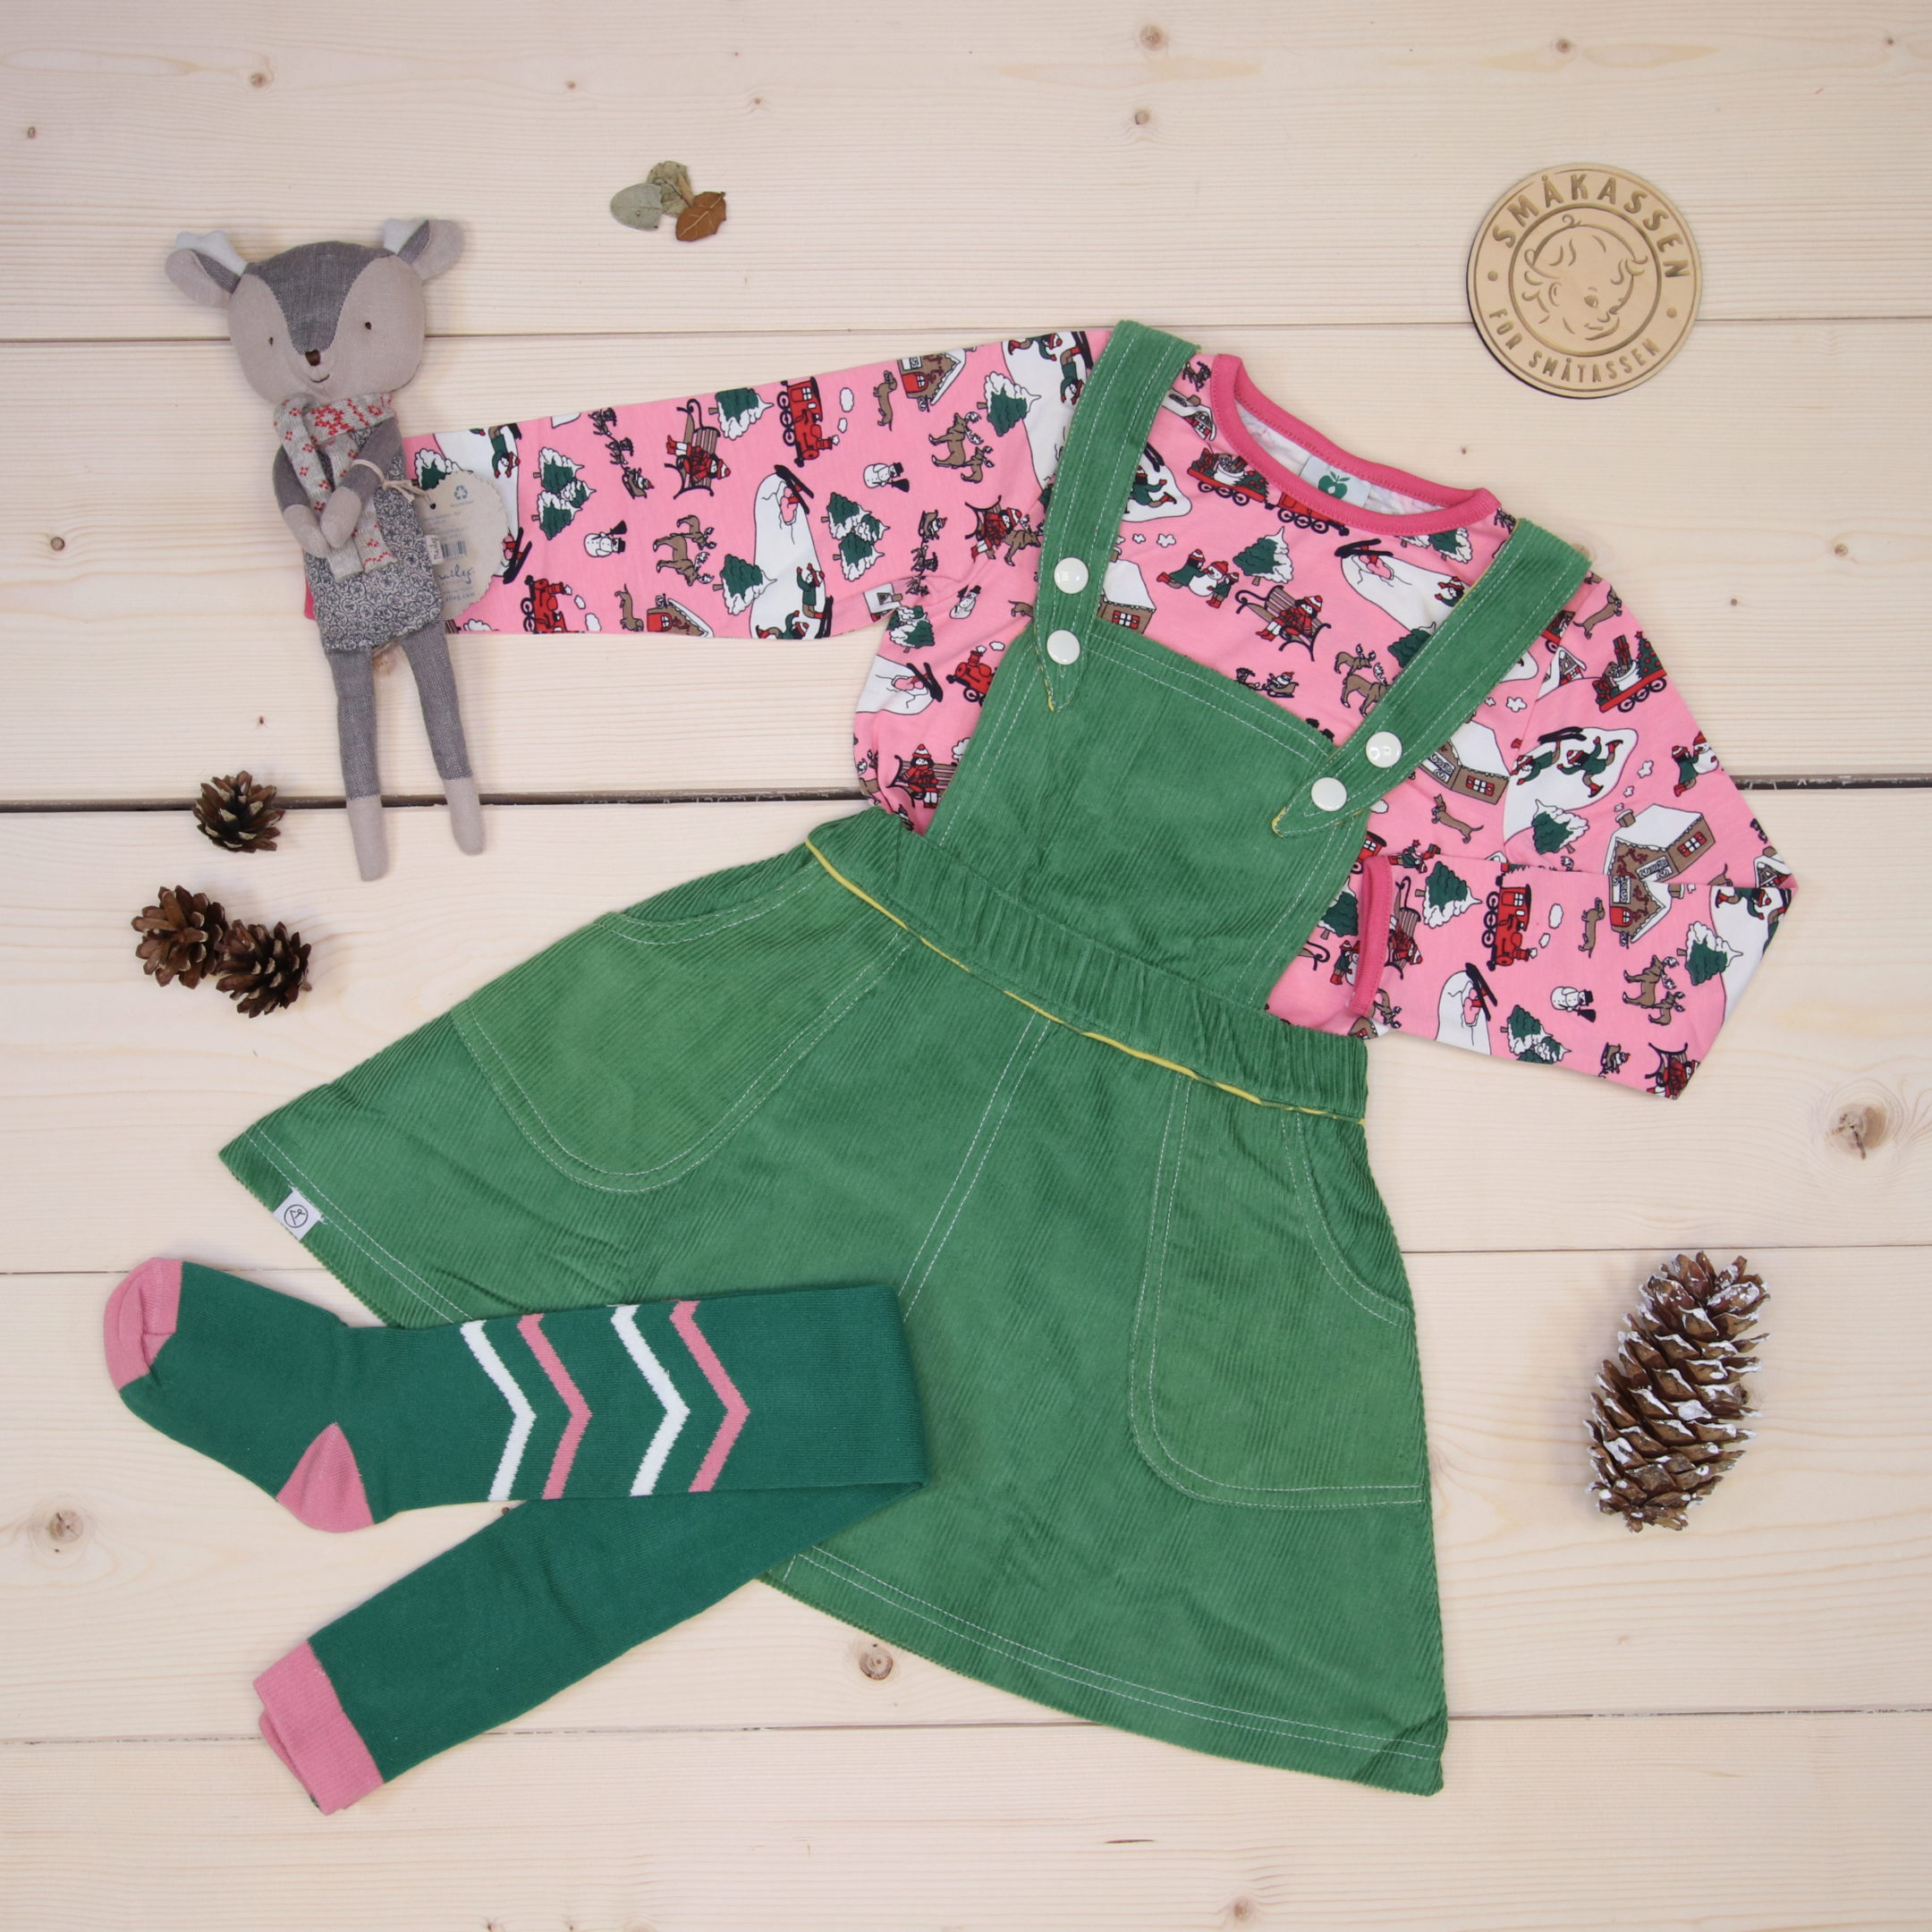 Småfolk and Alba combined makes a cool Christmas outfit 💚💗❤️  This is a 3000 NOK* Småkassen that we prepared for a girl  in the styles cute, cool, and colorful in size 98